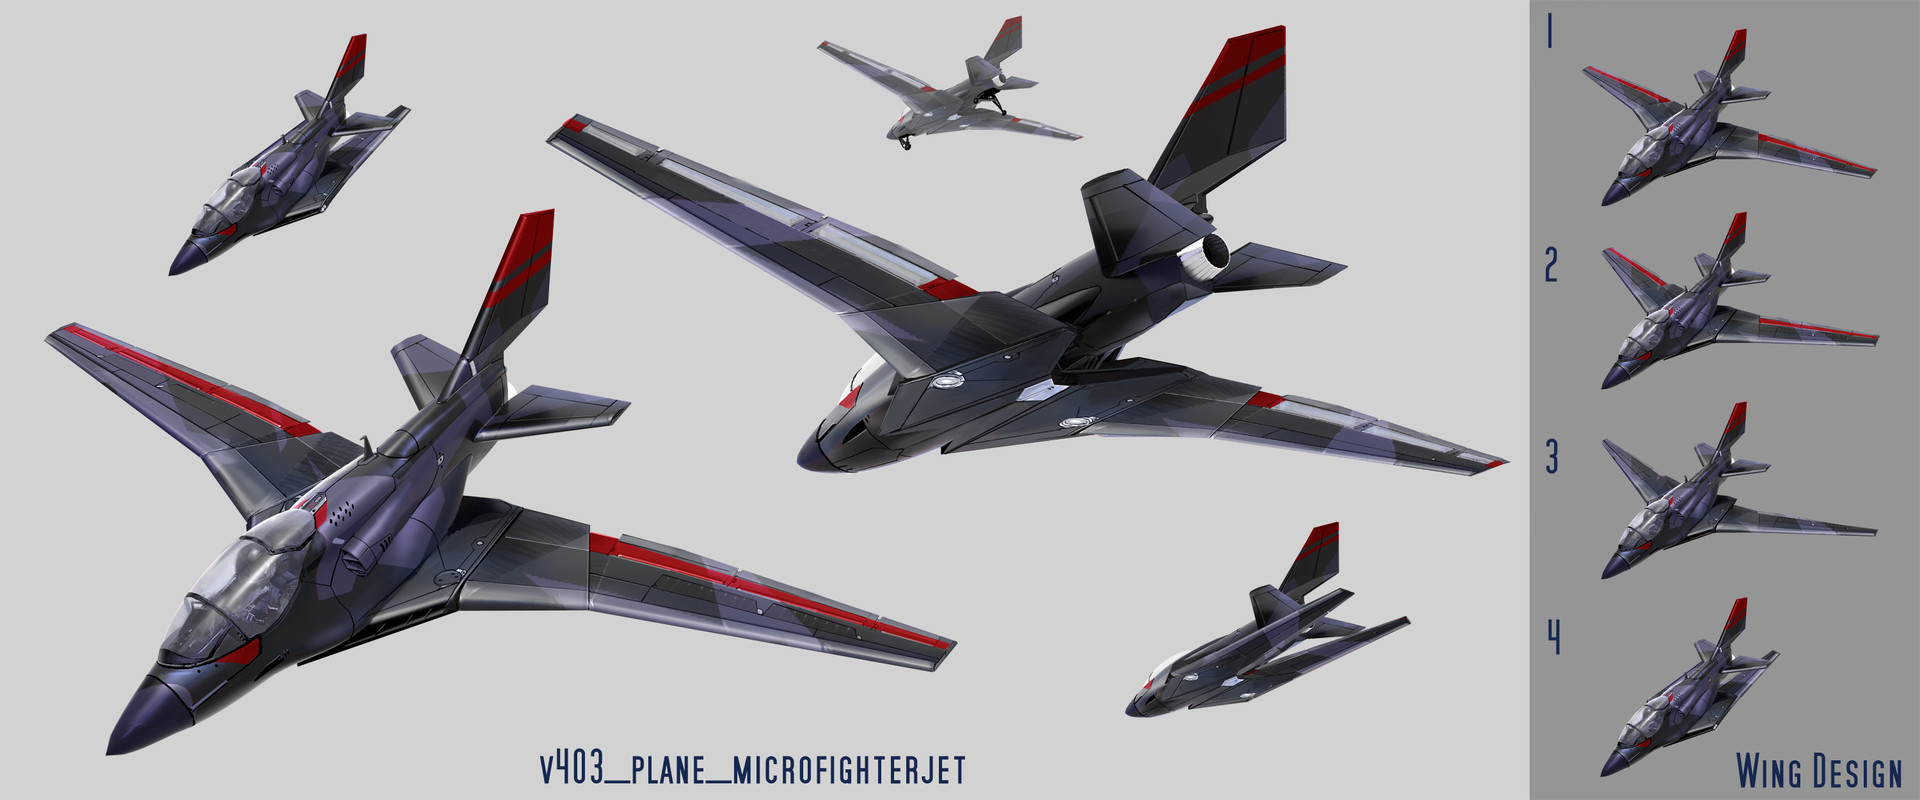 Nate abell v403 plane microfighterjet final